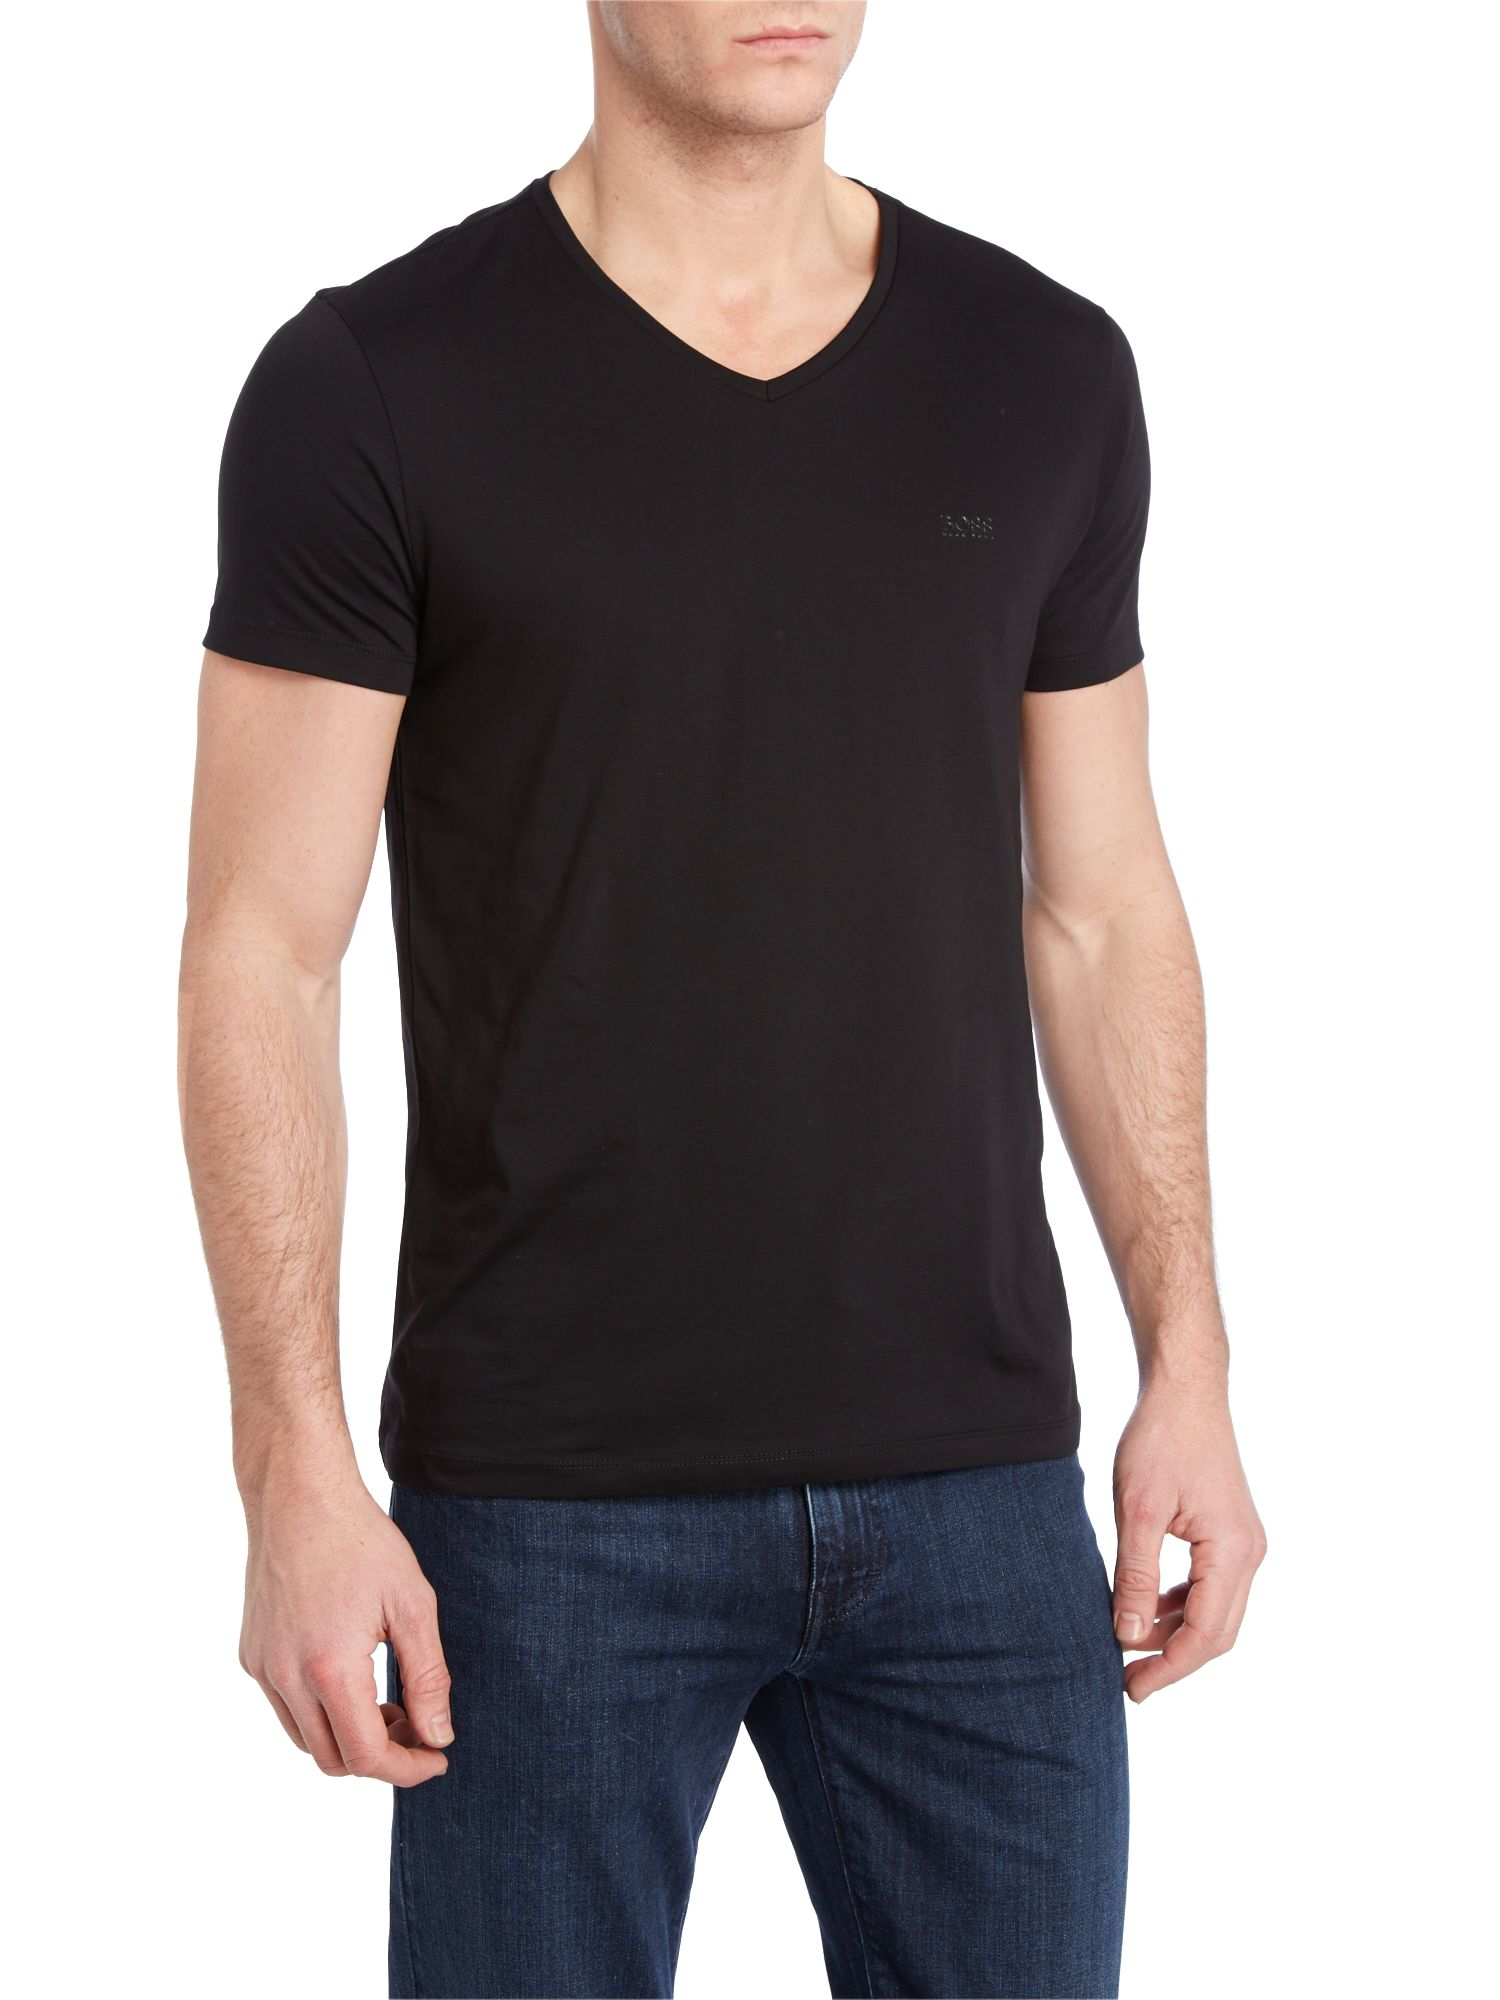 V neck logo t shirt